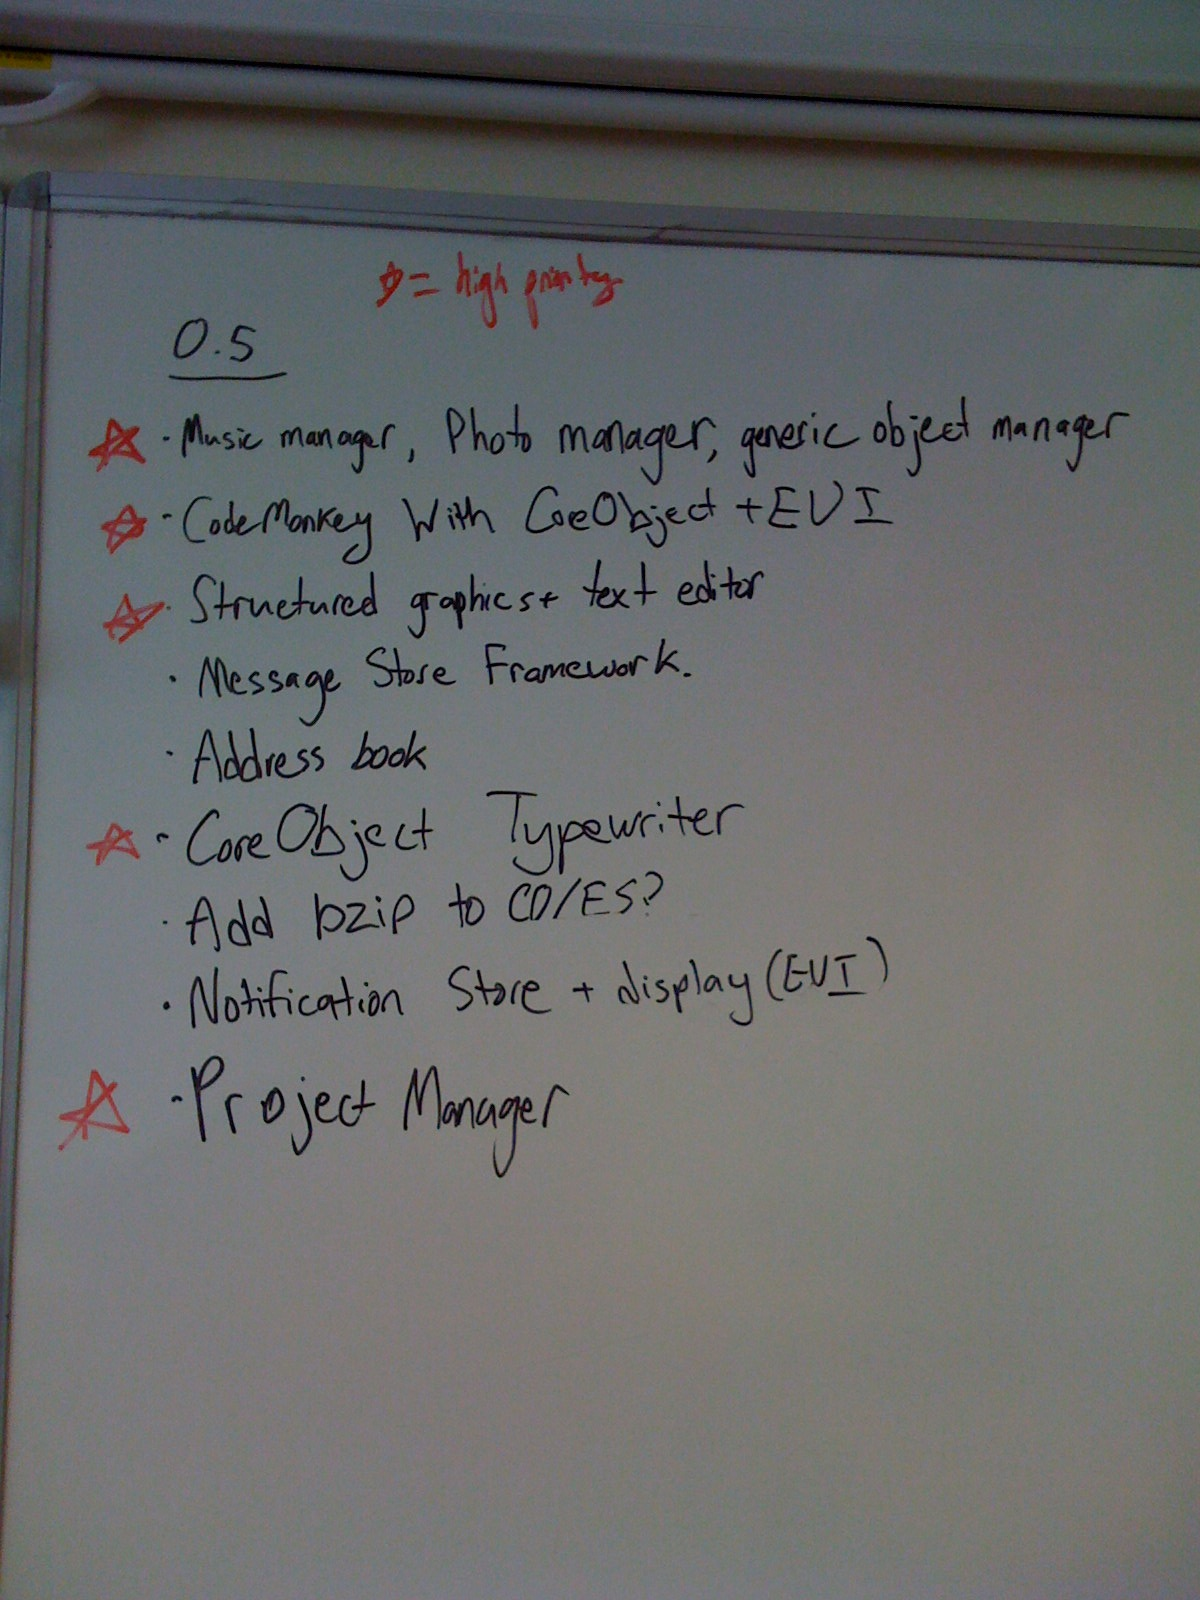 Whiteboard Notes on 0.5